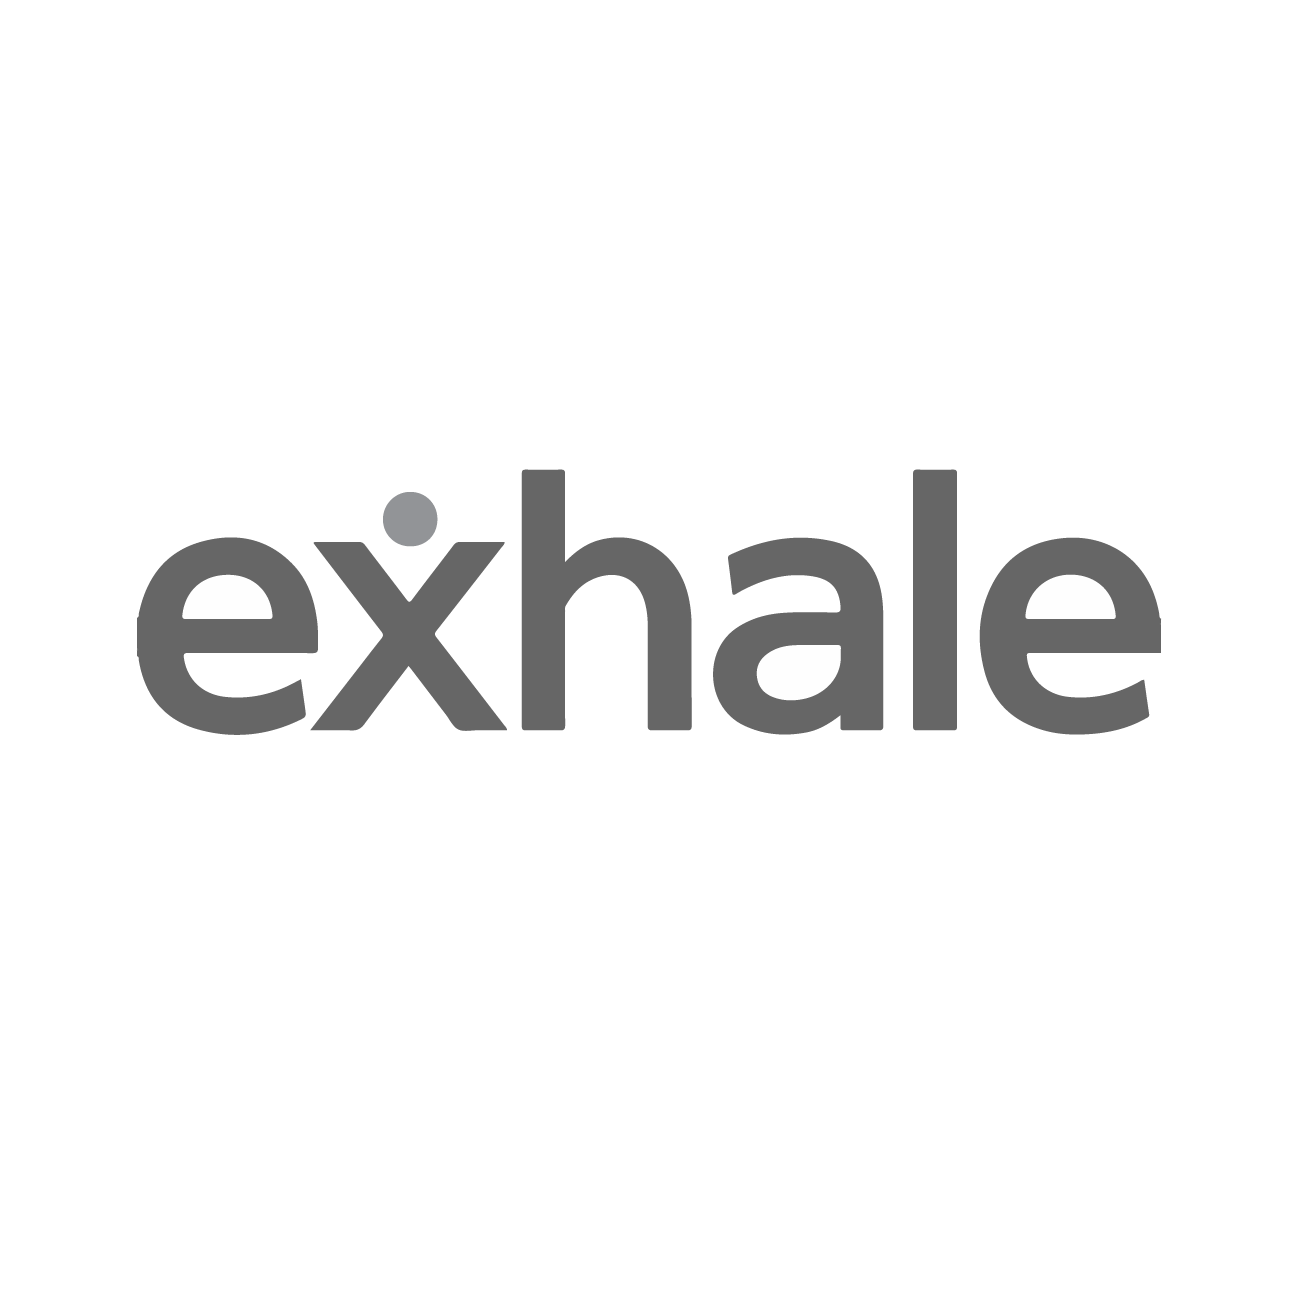 Exhale-01.png